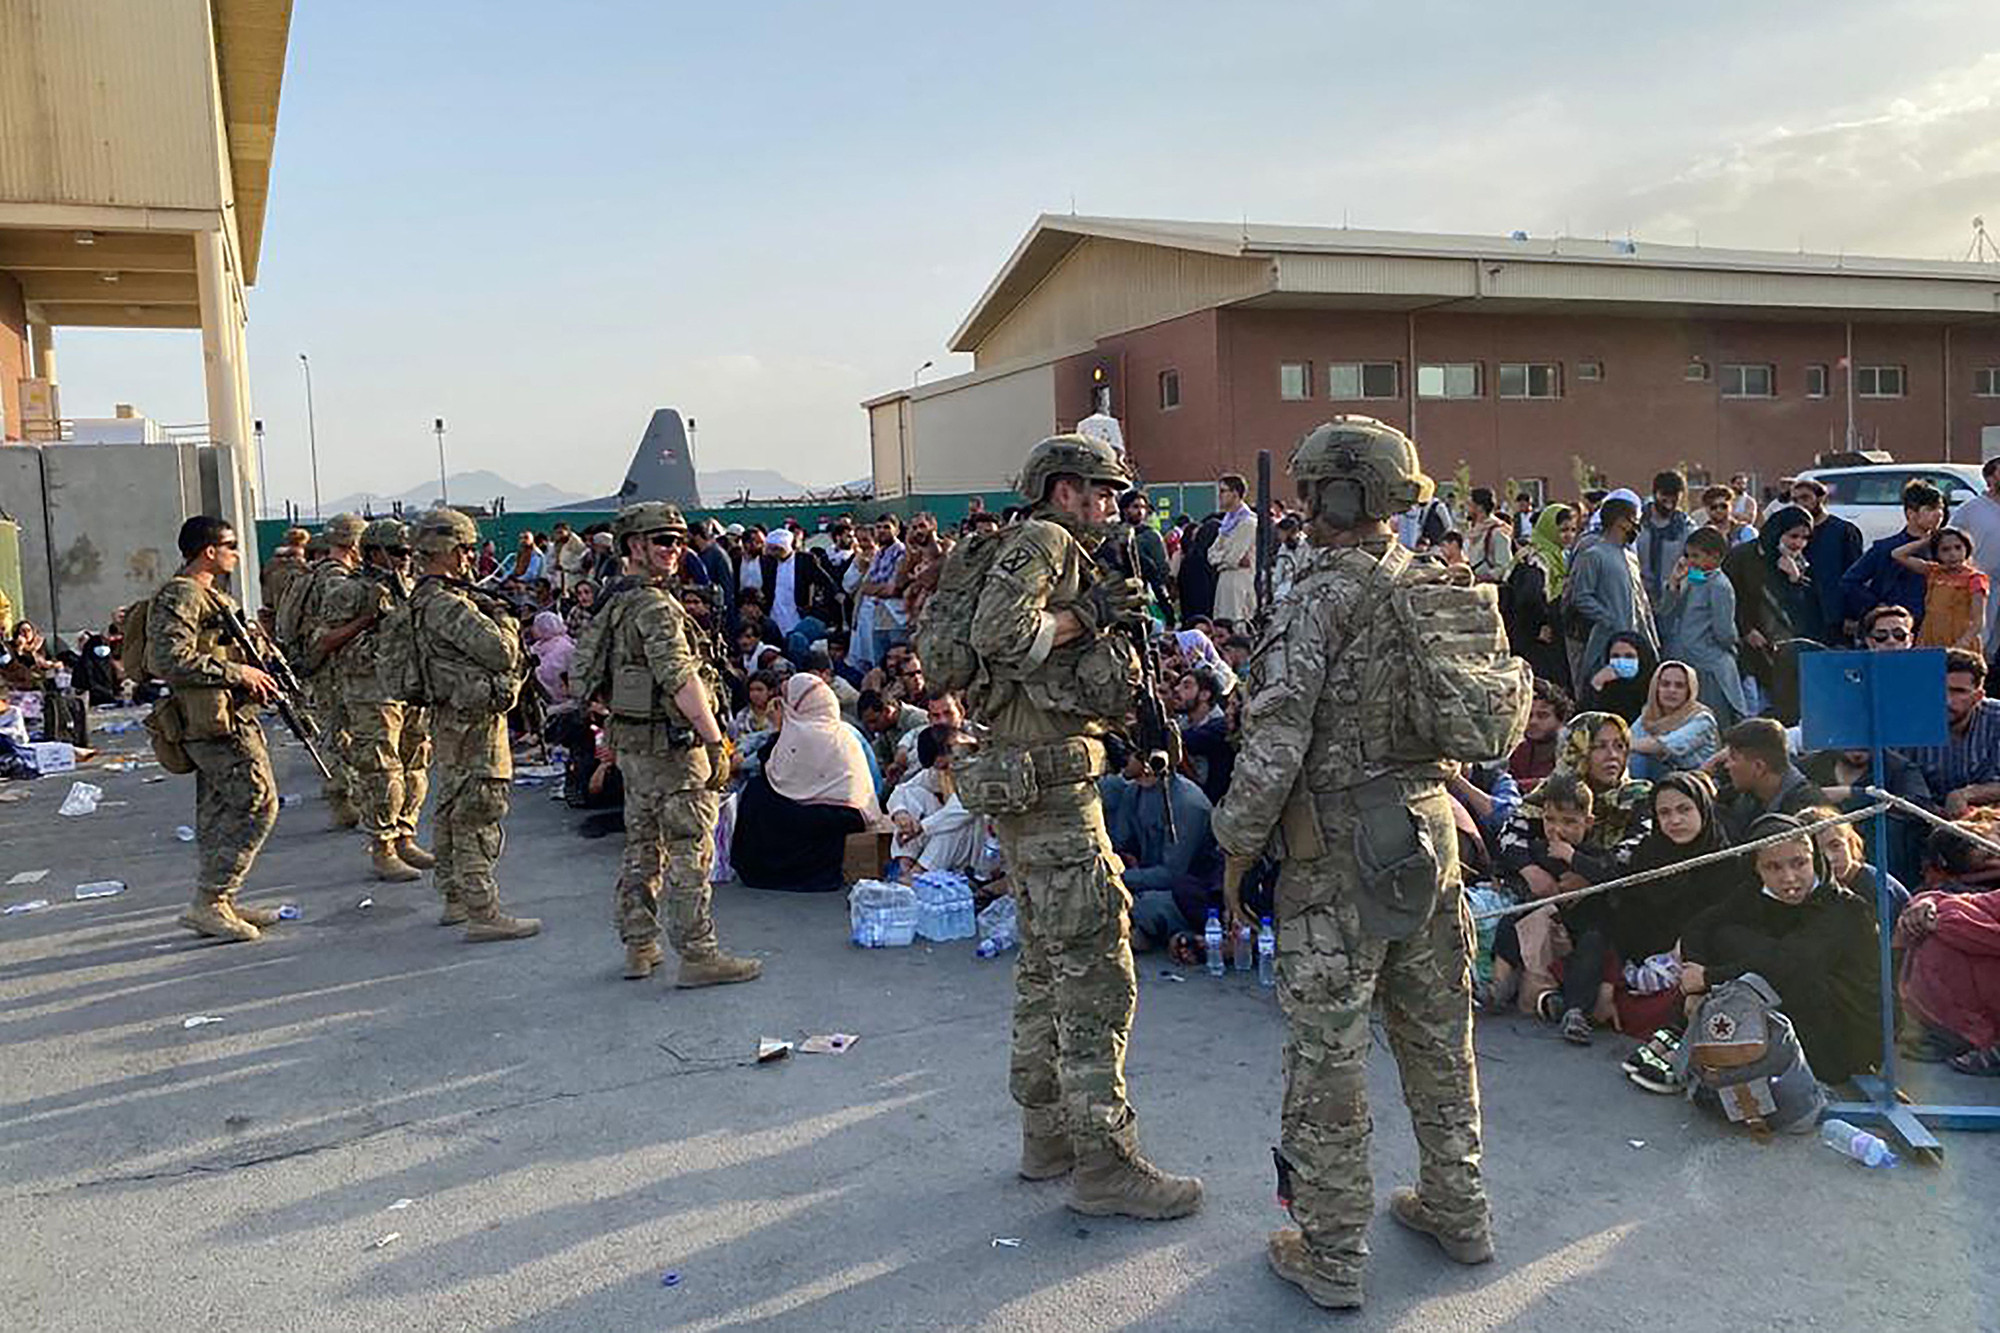 US soldiers stand guard as Afghan people wait to board a US military aircraft to leave Afghanistan, at the military airport in Kabul after Taliban's military takeover of Afghanistan.